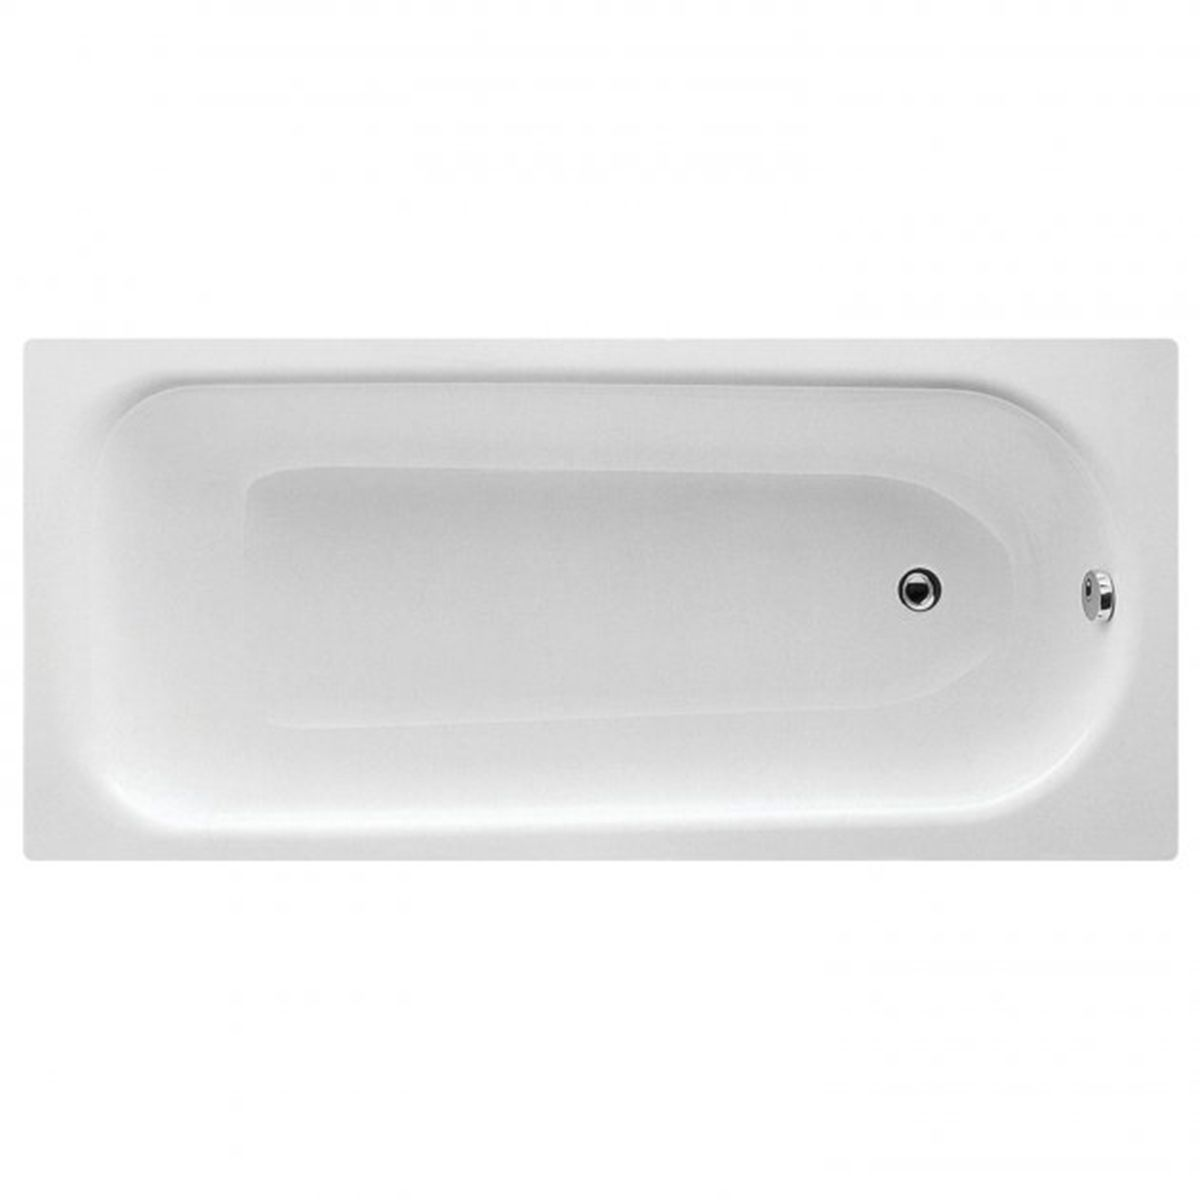 Bathrooms To Love Rectangular 2 Tap Hole Single Ended Steel Bath 1600mm x 700mm